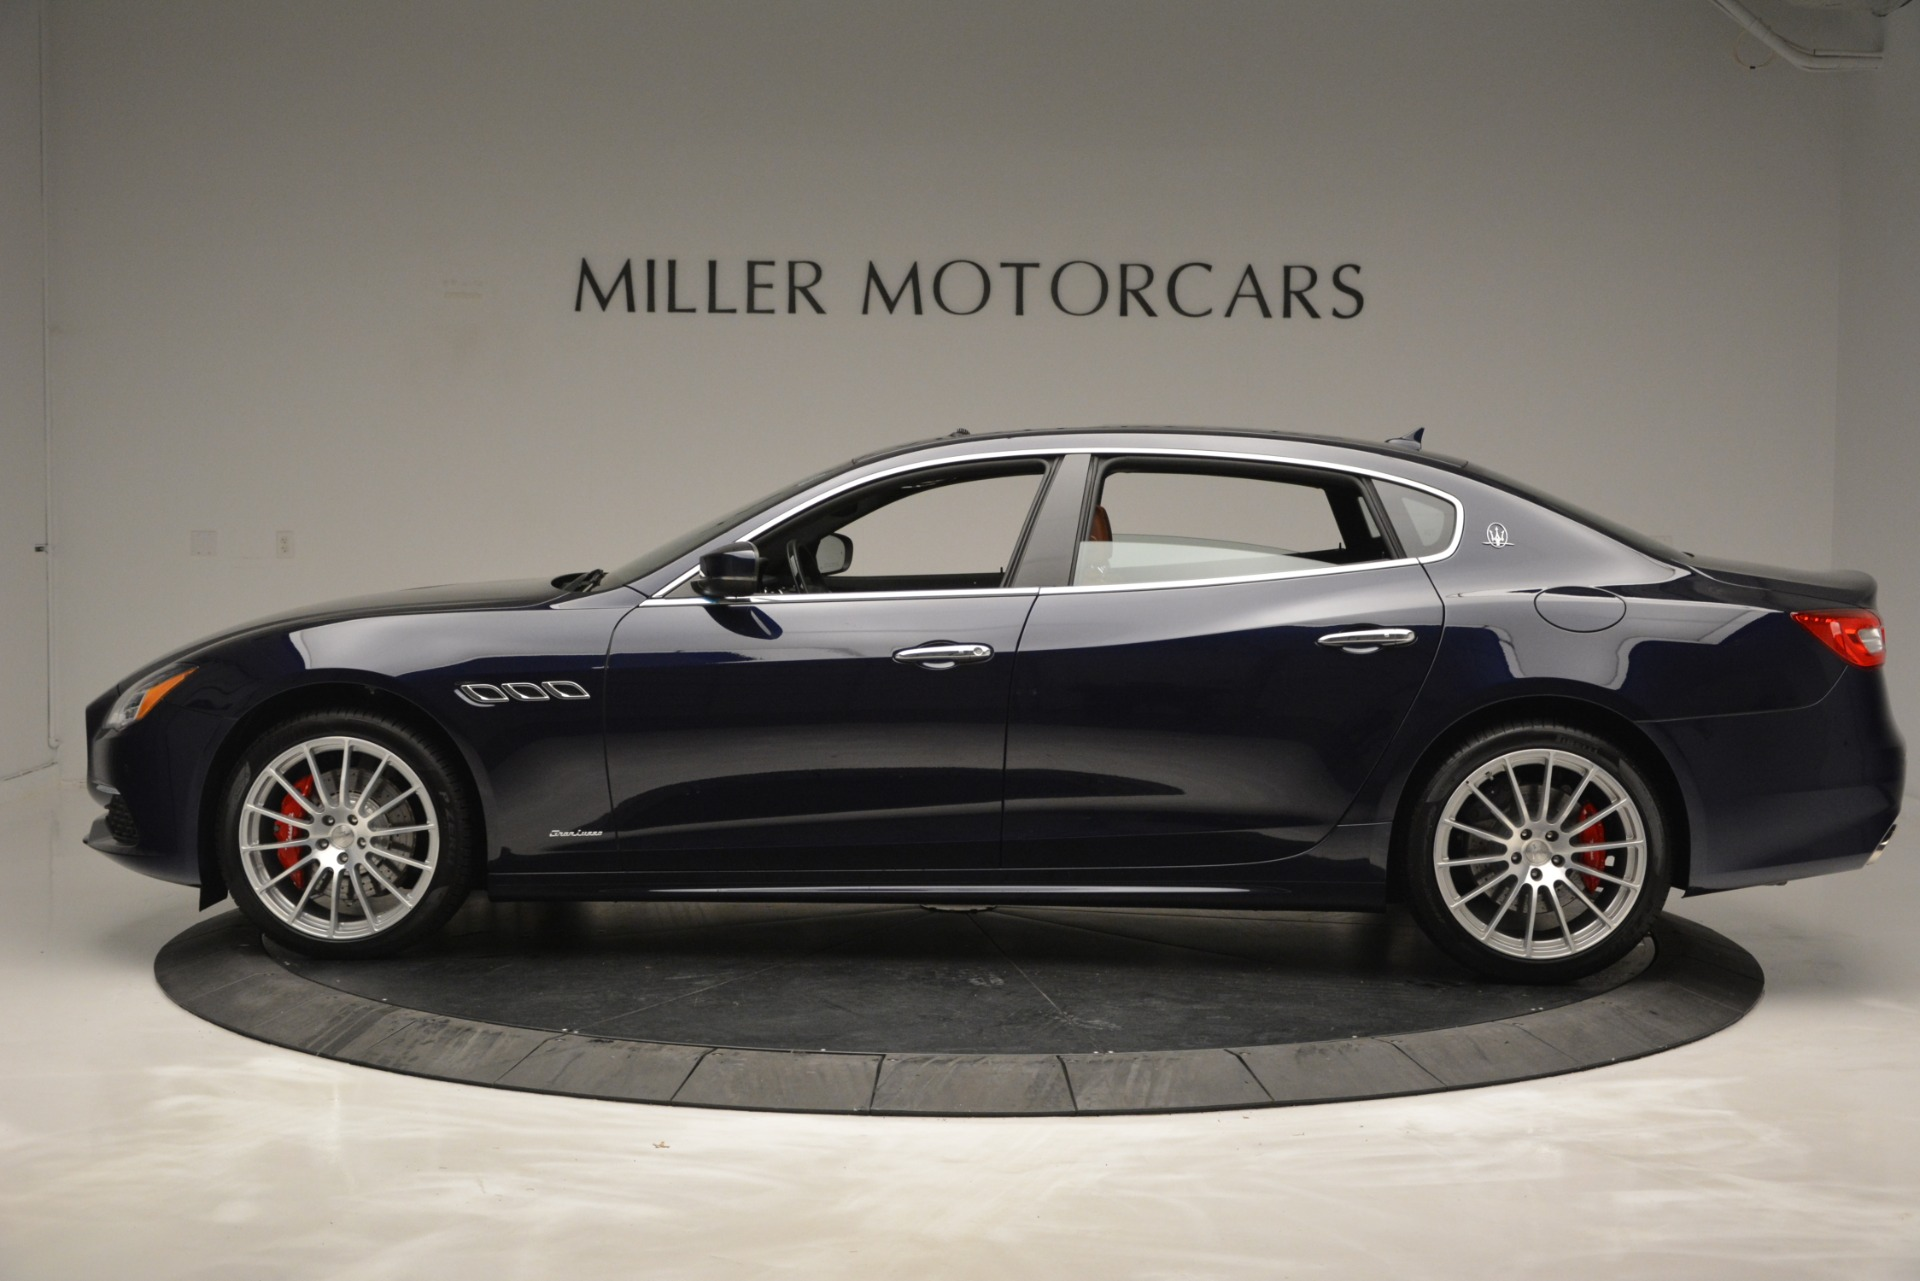 New 2019 Maserati Quattroporte S Q4 GranLusso For Sale In Westport, CT 2620_p3